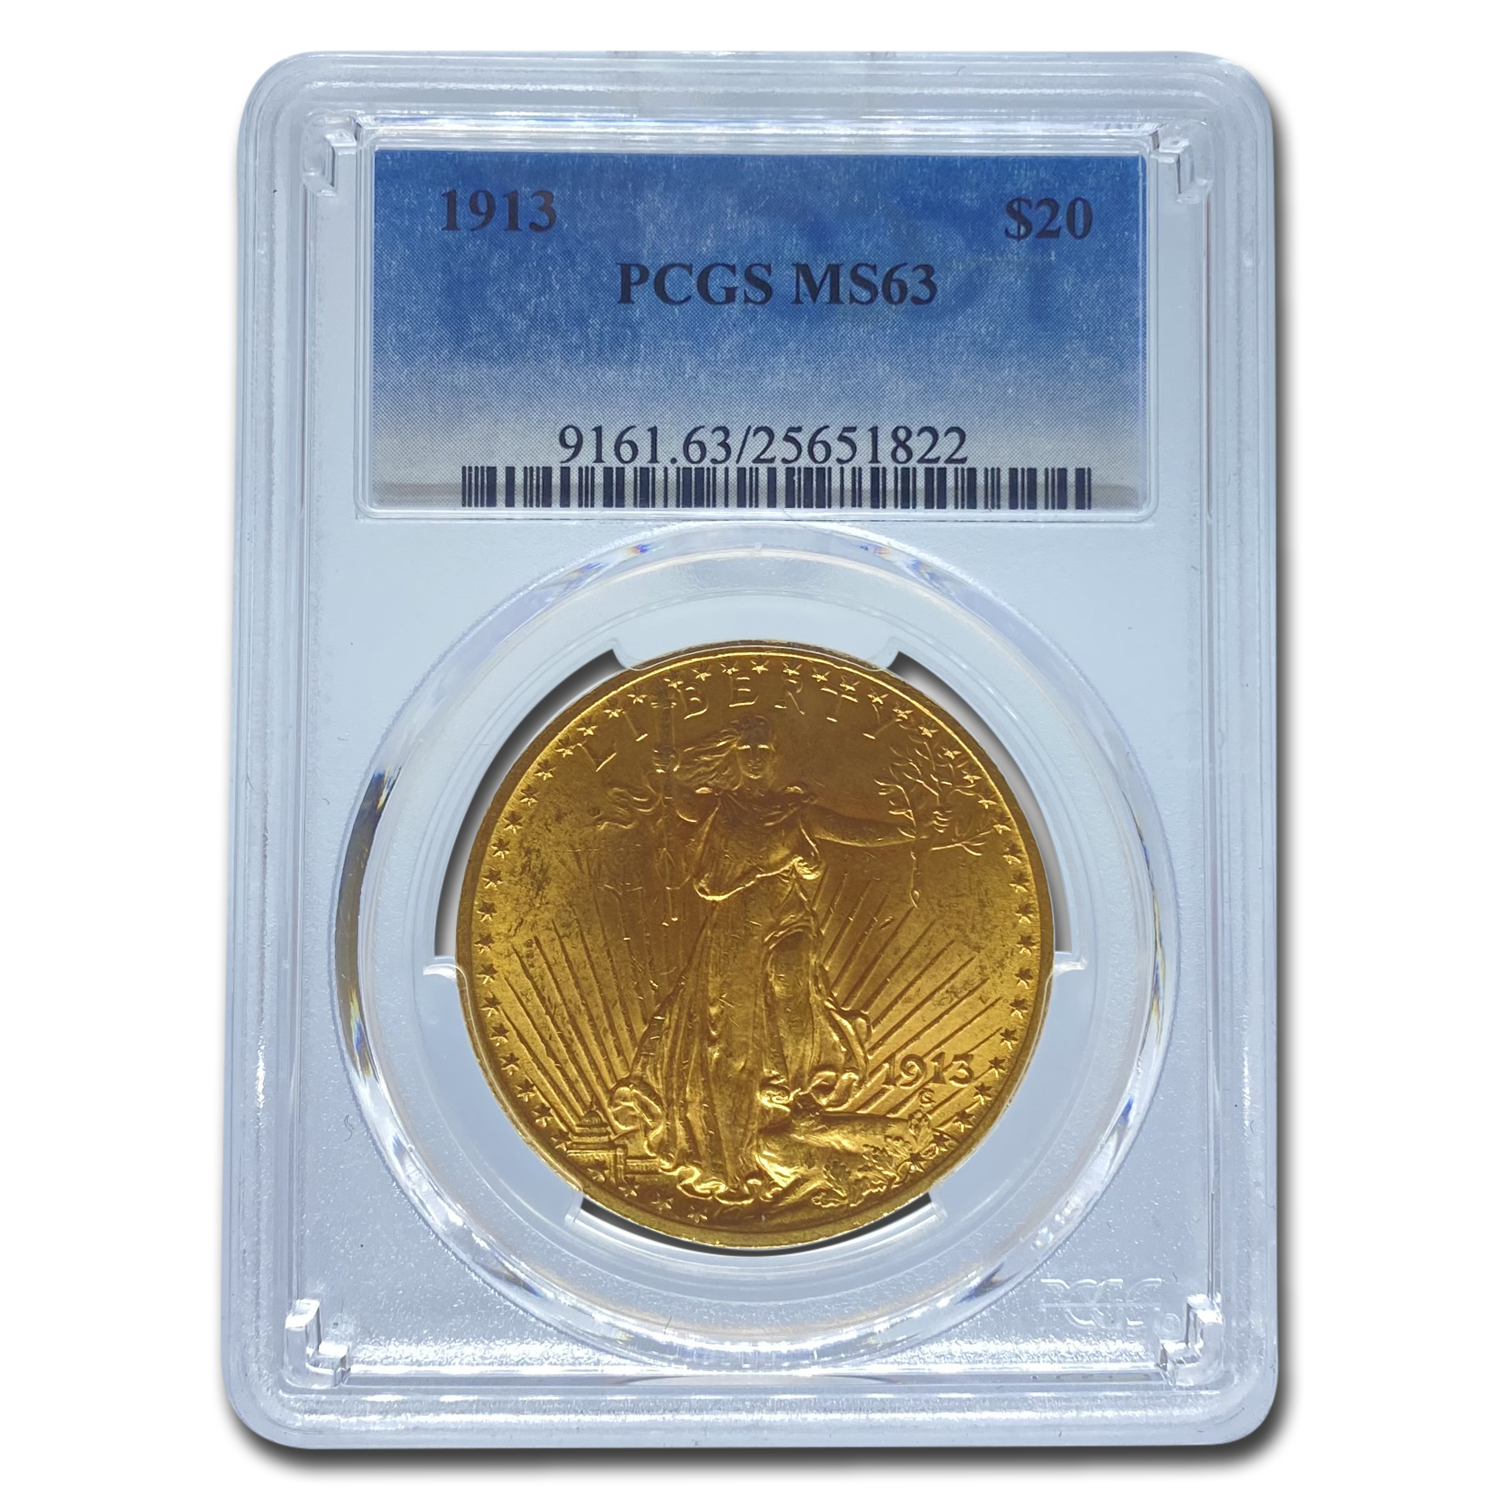 1913 $20 St. Gaudens Gold Double Eagle MS-63 PCGS